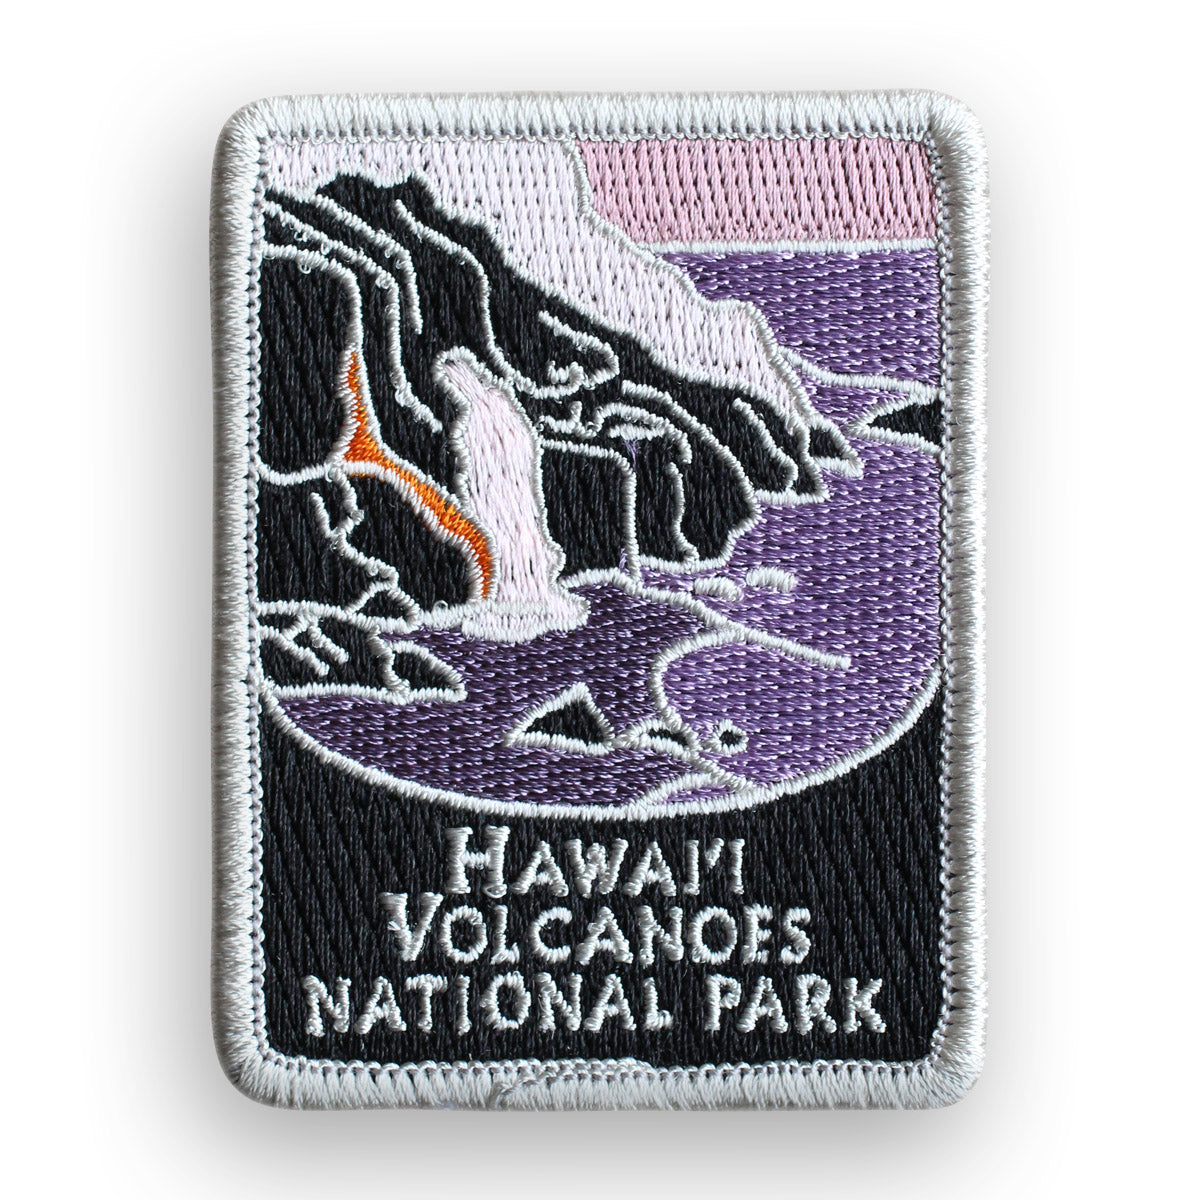 Hawai'i Volcanoes National Park Traveler Patch